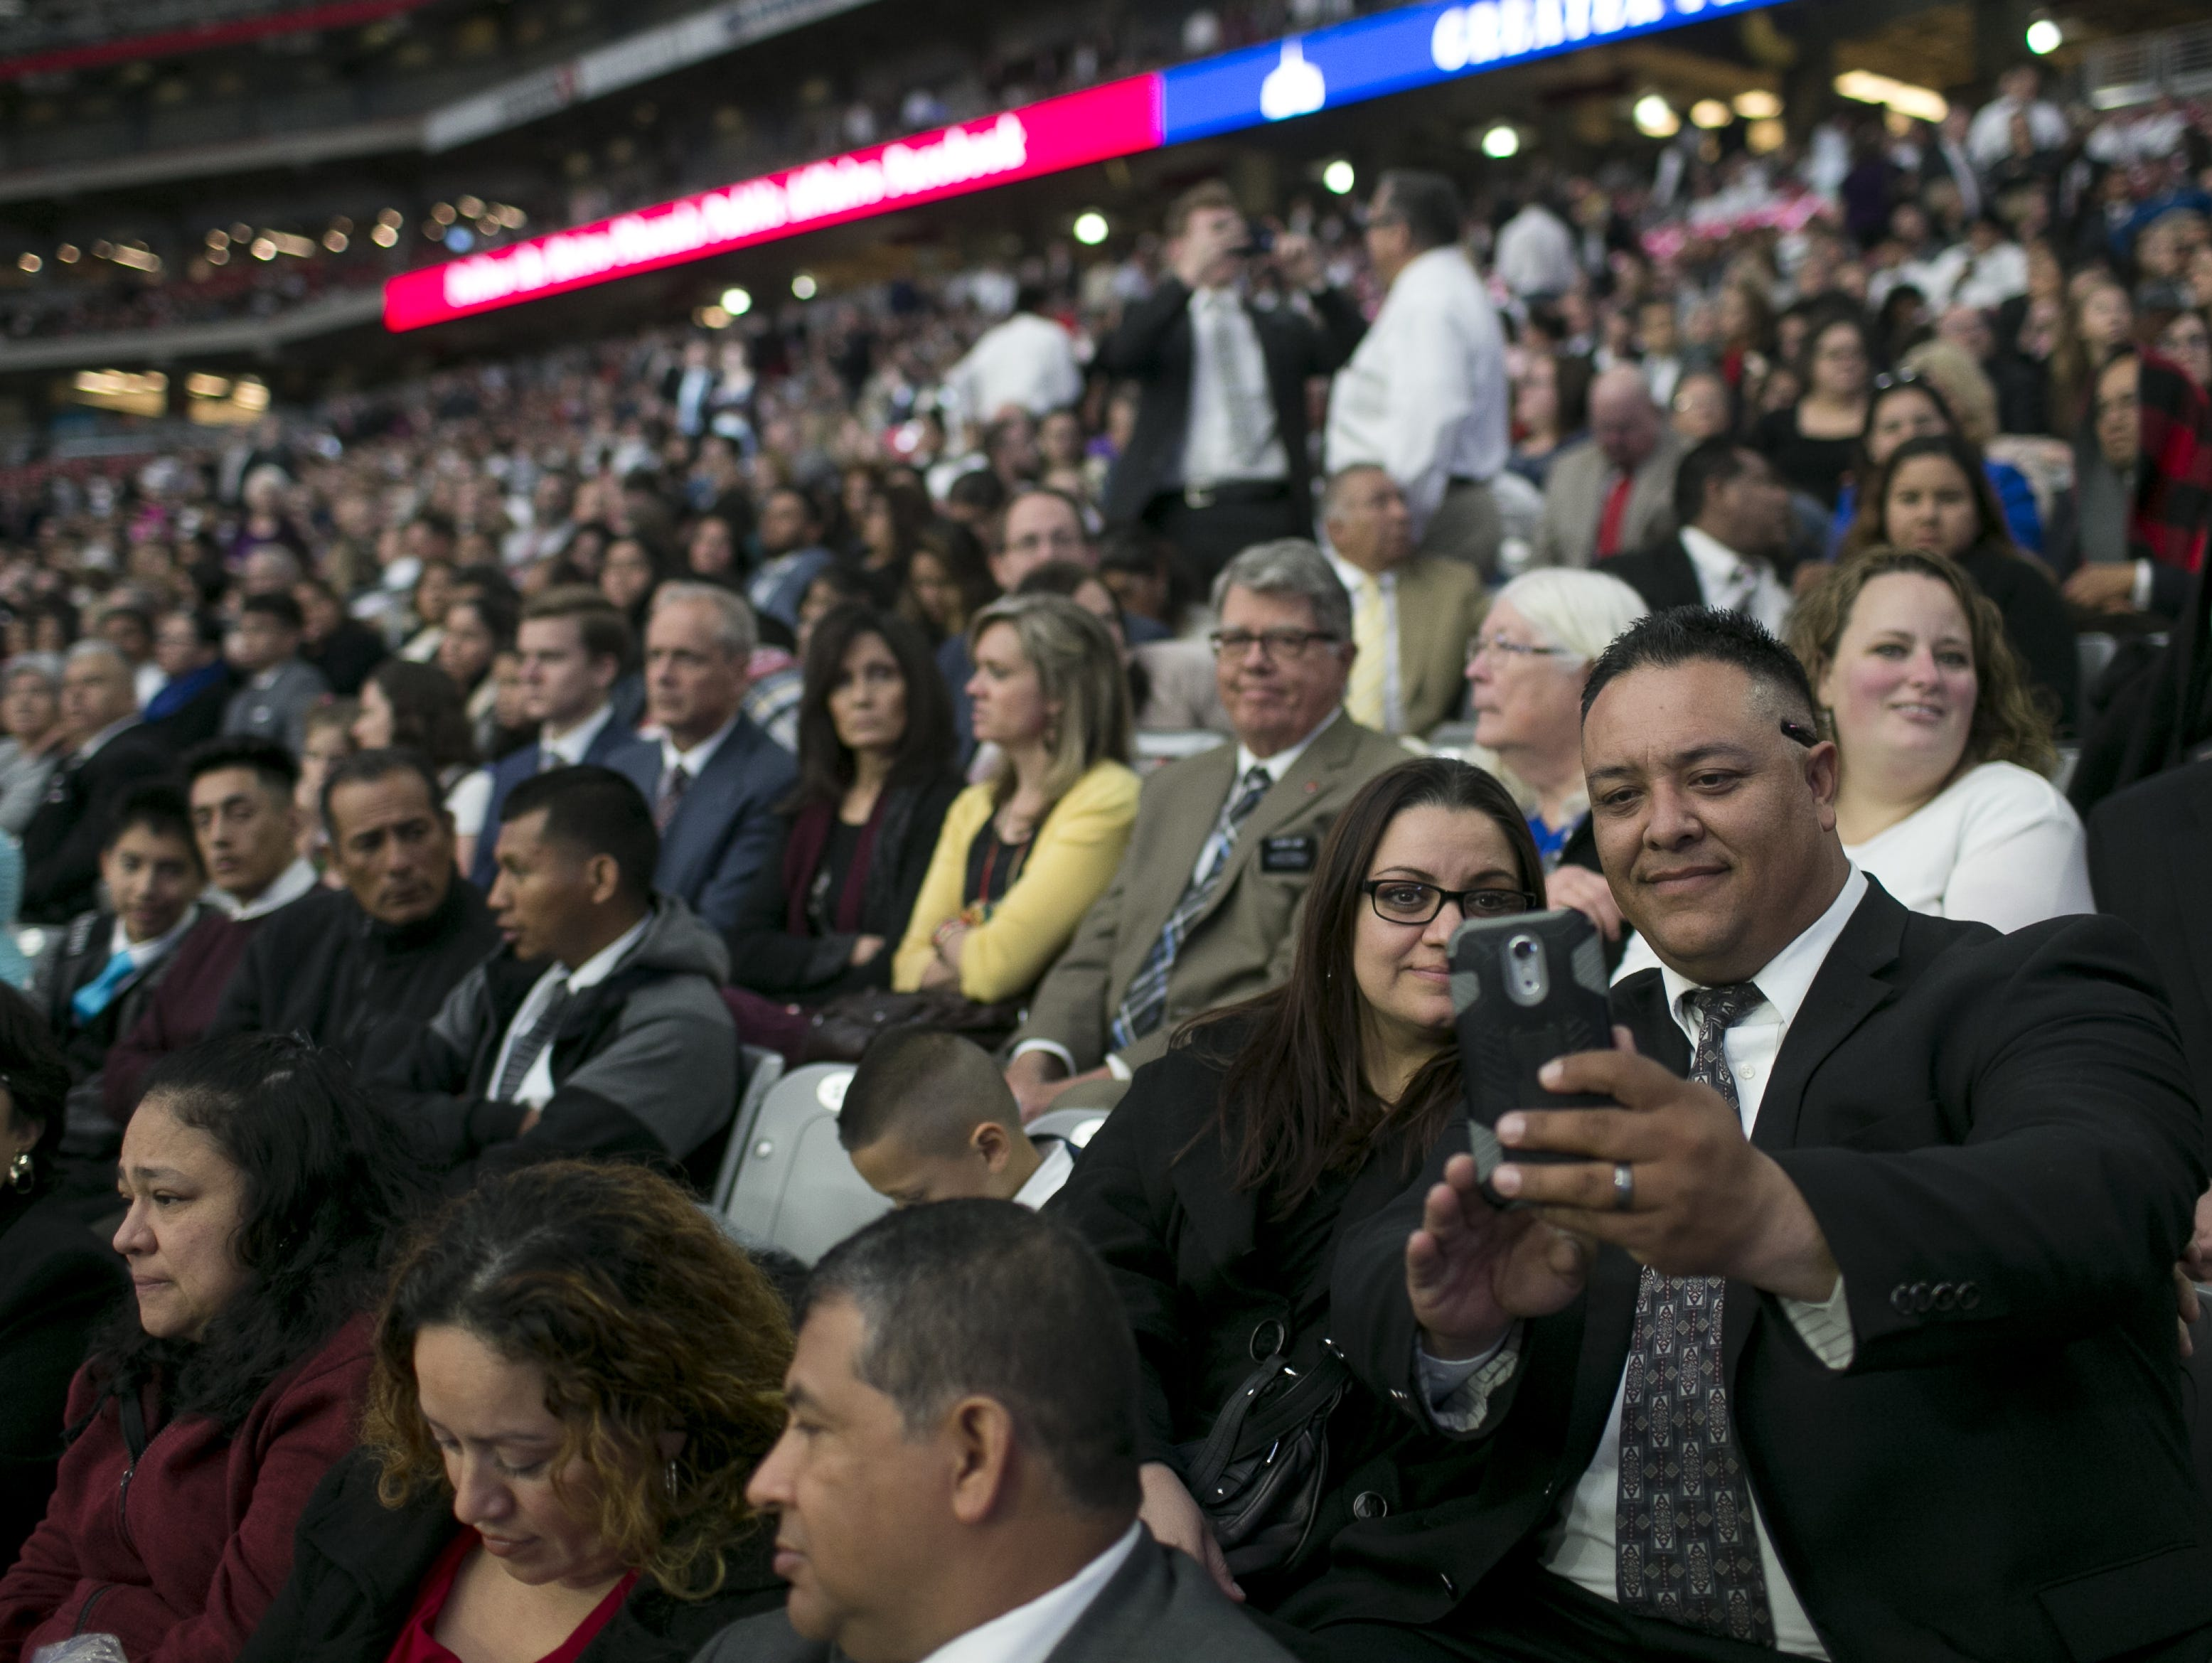 Karla Sanchez (left) and Jesus Sanchez (right) take a selfie while waiting with other members of the Church of Jesus Christ of Latter-day Saints to hear church president Russell Nelson speak at State Farm Stadium in Glendale, Arizona on Sunday, Feb. 10, 2019.